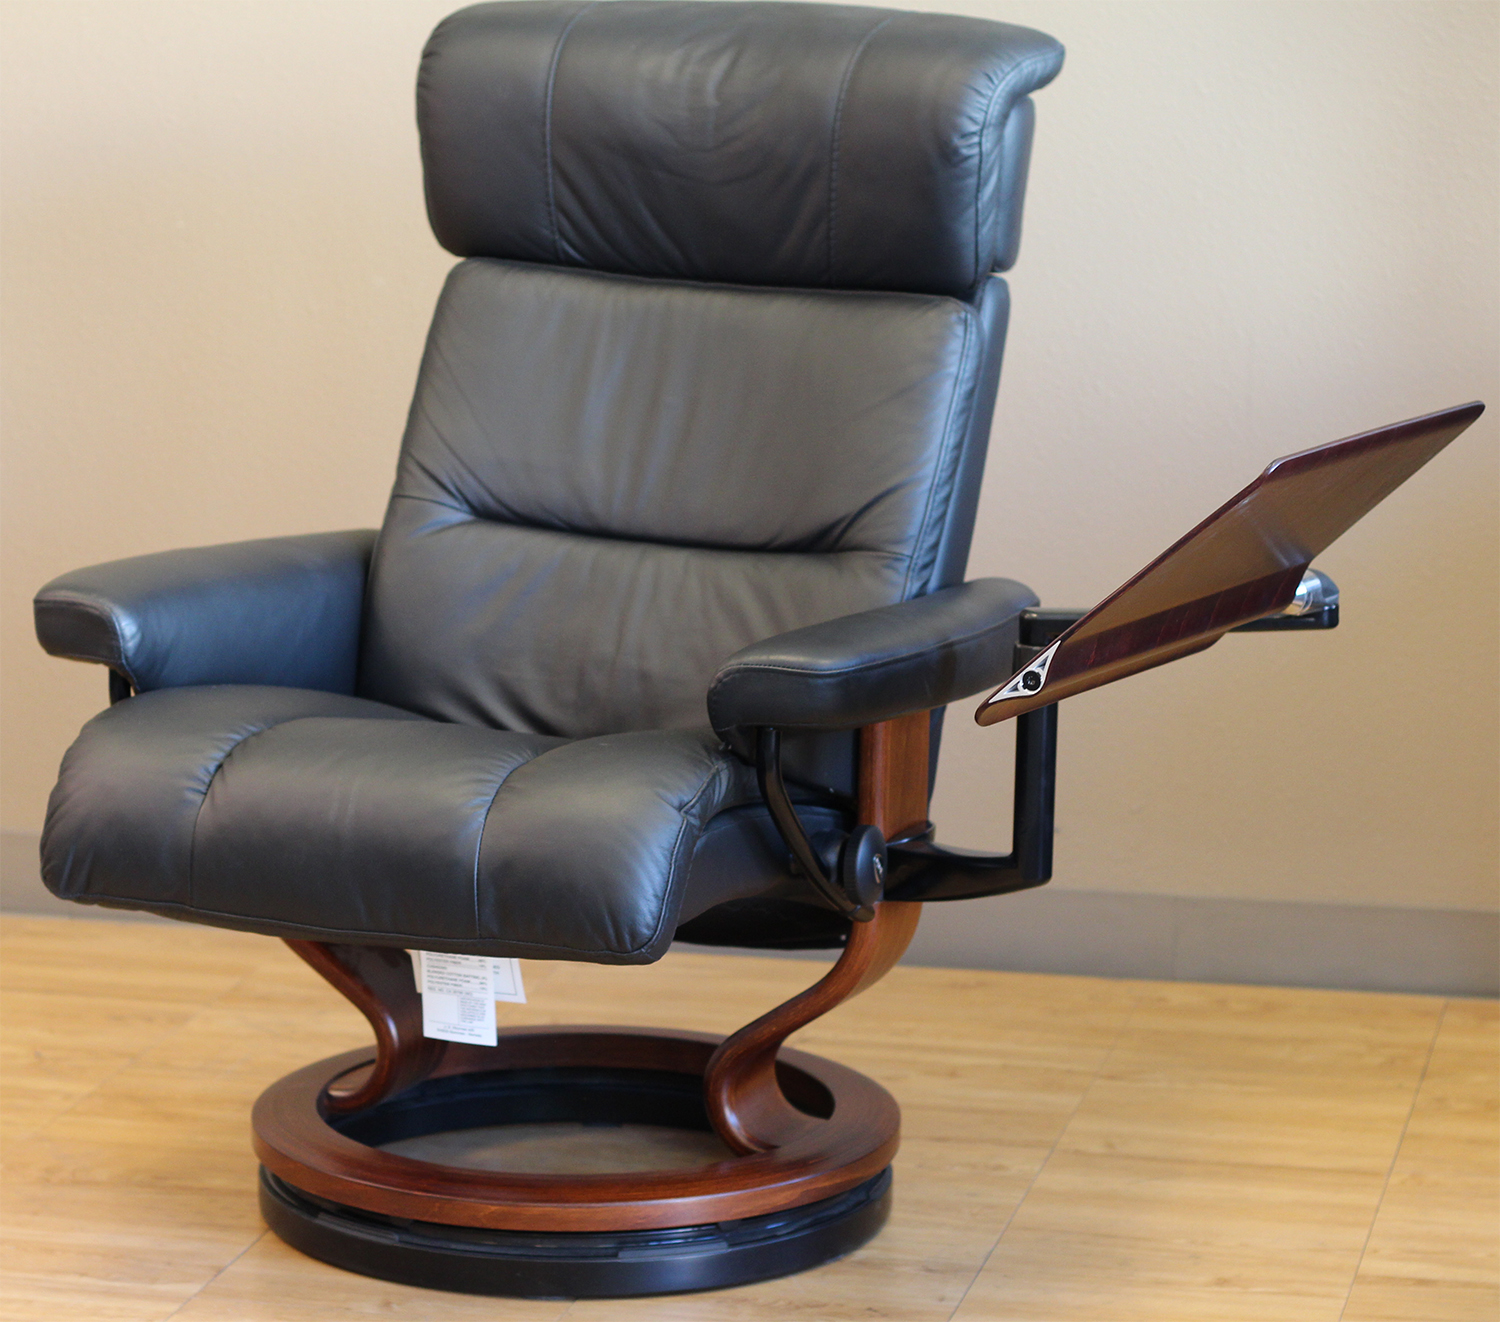 Recliner Computer Chair Stressless Personal Computer Table From Ekornes